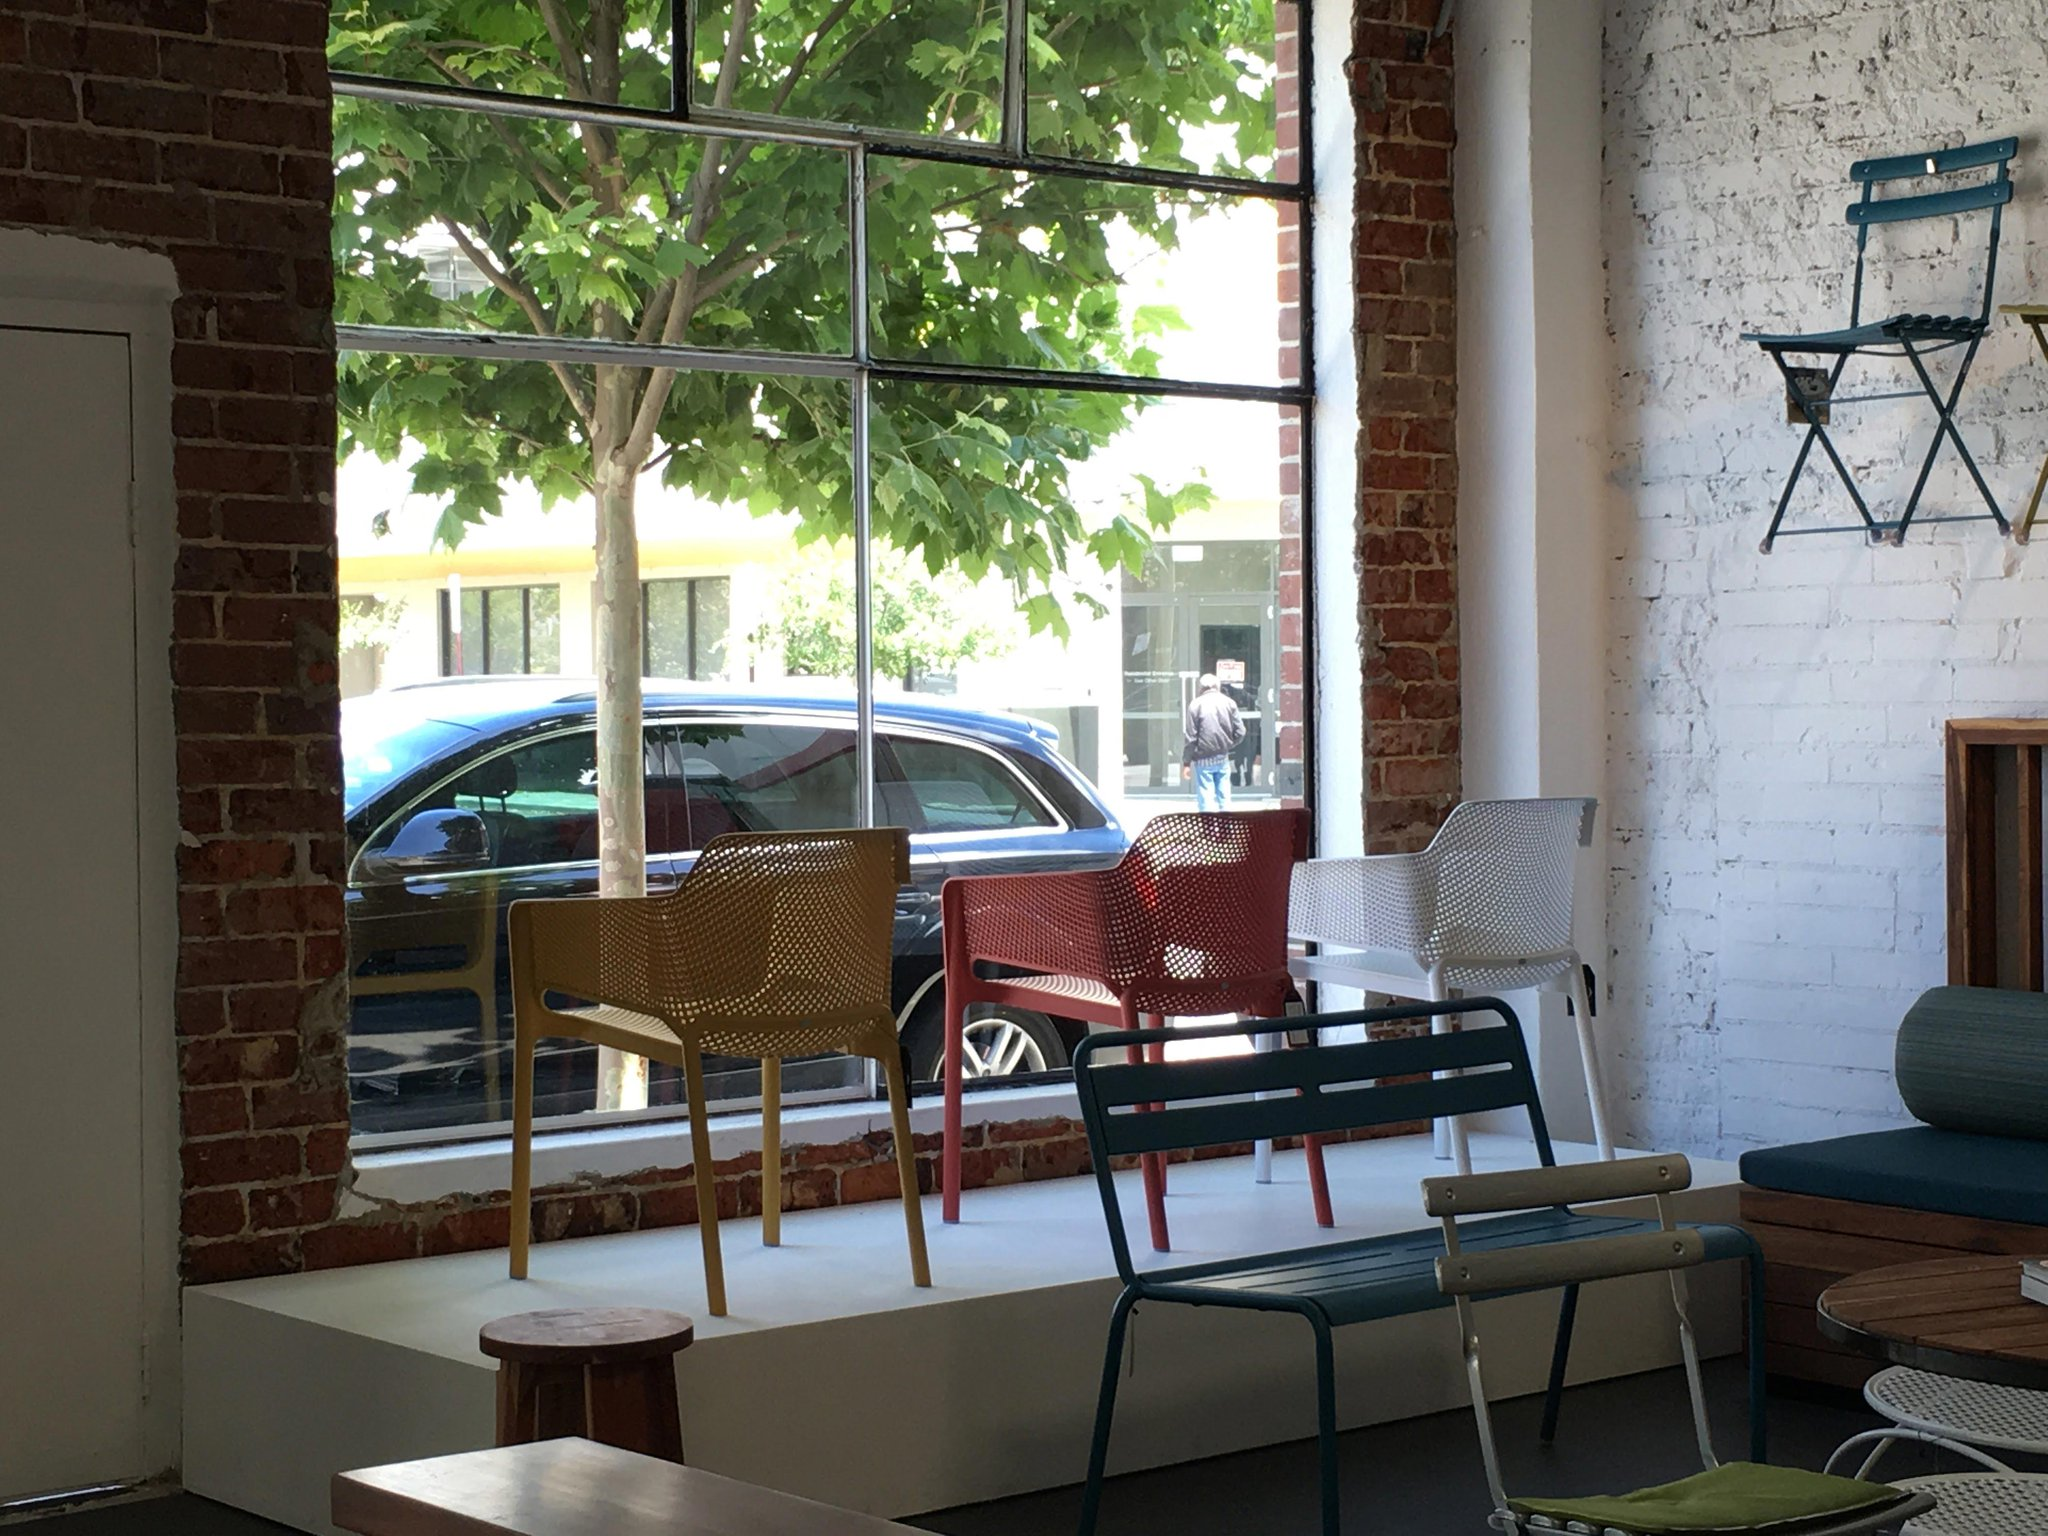 Nardi Outdoor On Twitter Nardi Net Chairs Showcased In A Cool Store In Perth Australia Madeinitaly Design Around The World